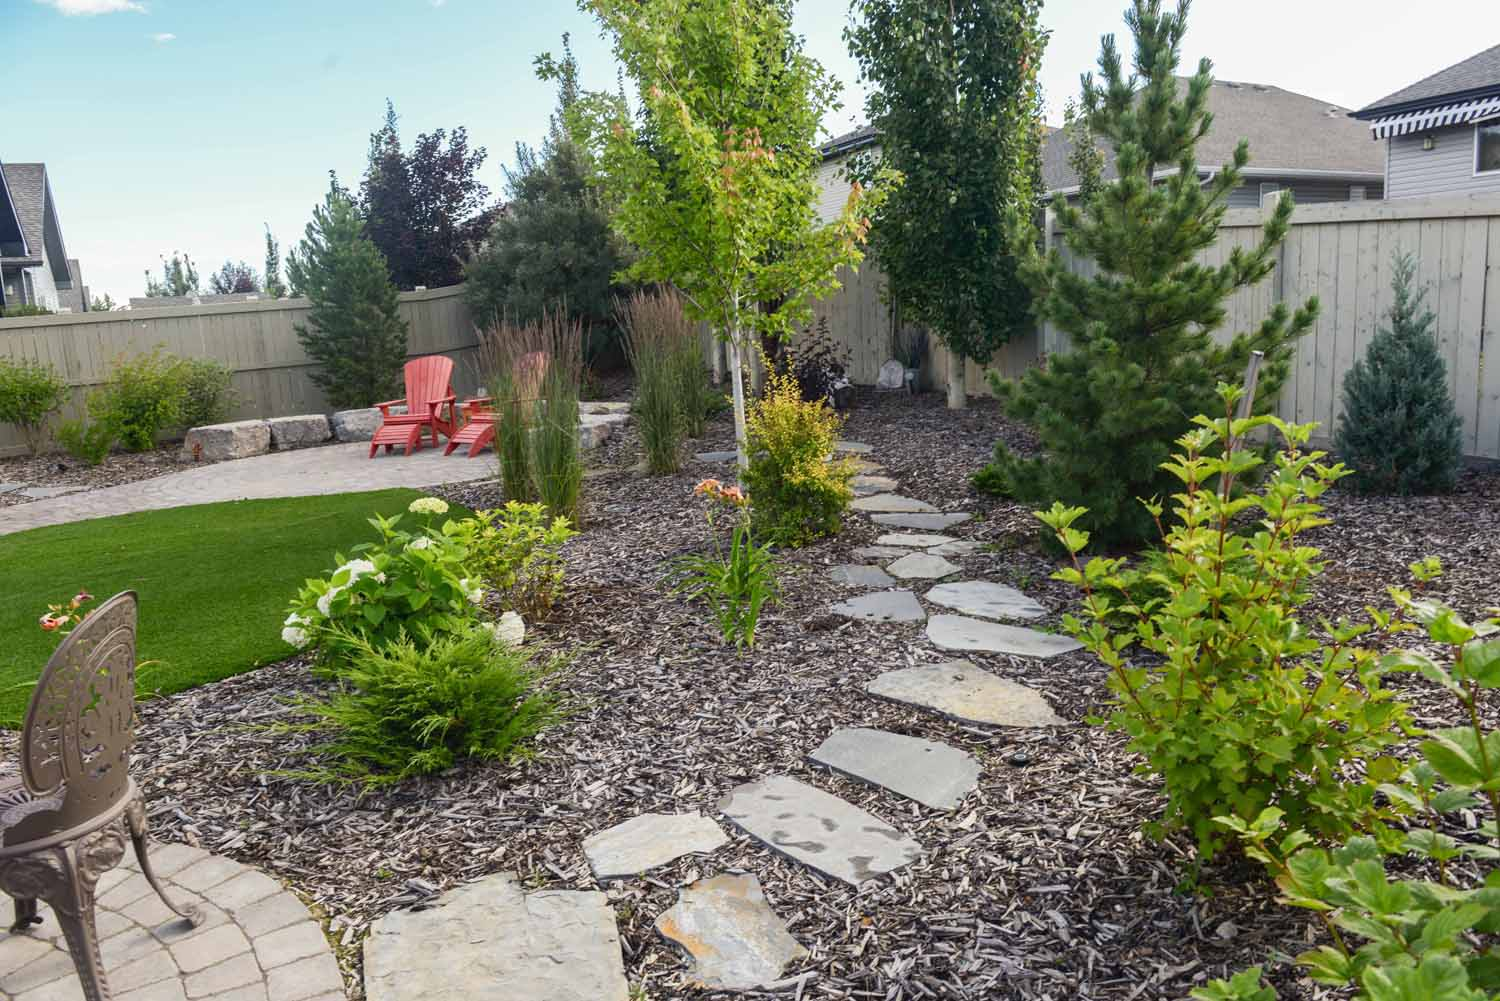 Xeriscaped backyard with path way and plants